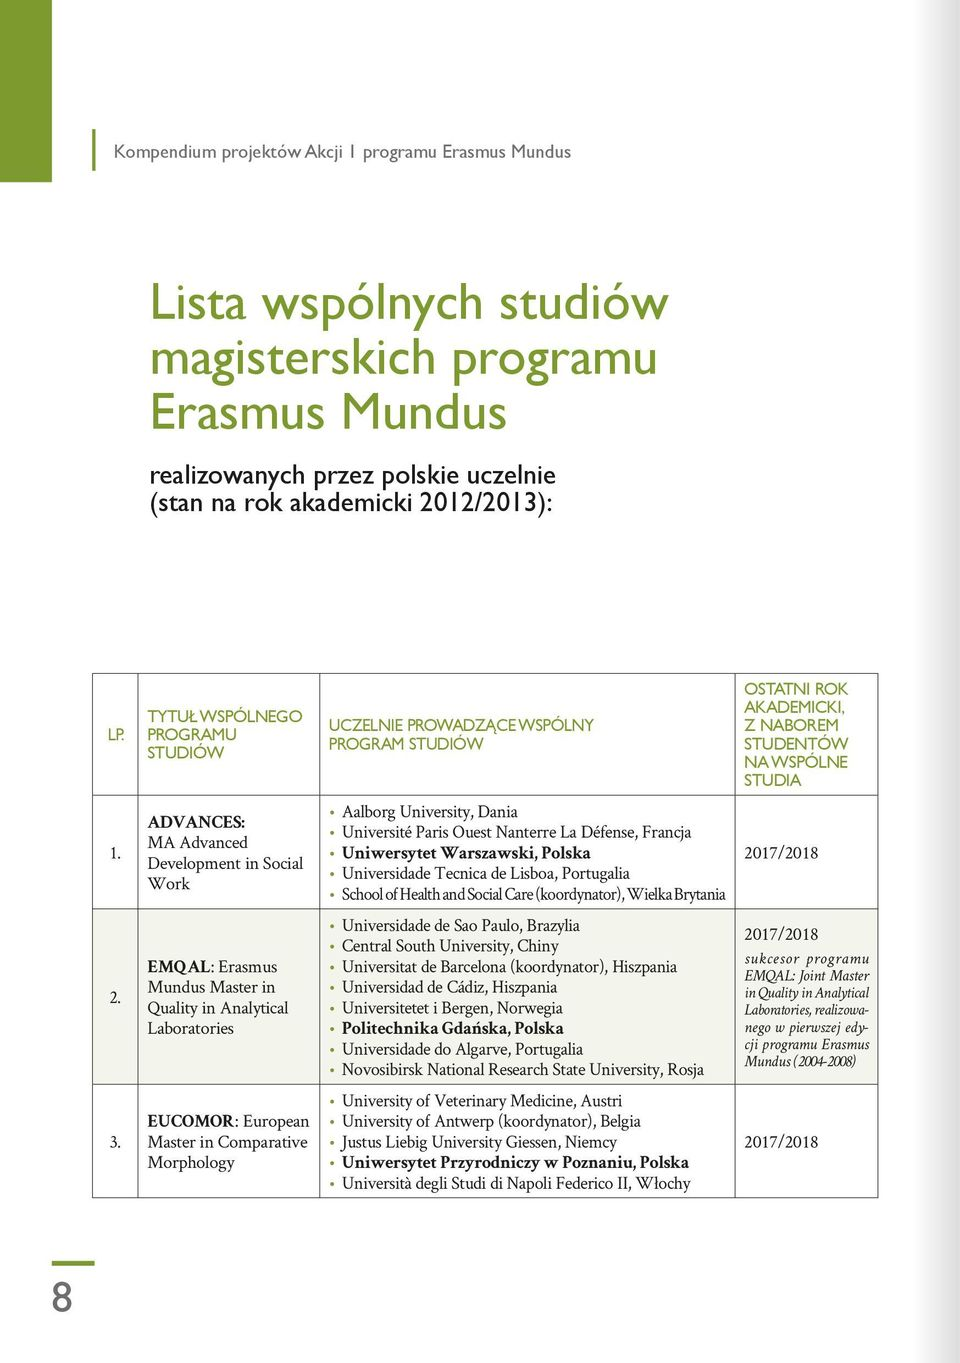 ADVANCES: MA Advanced Development in Social Work Aalborg University, Dania Université Paris Ouest Nanterre La Défense, Francja Uniwersytet Warszawski, Polska Universidade Tecnica de Lisboa,